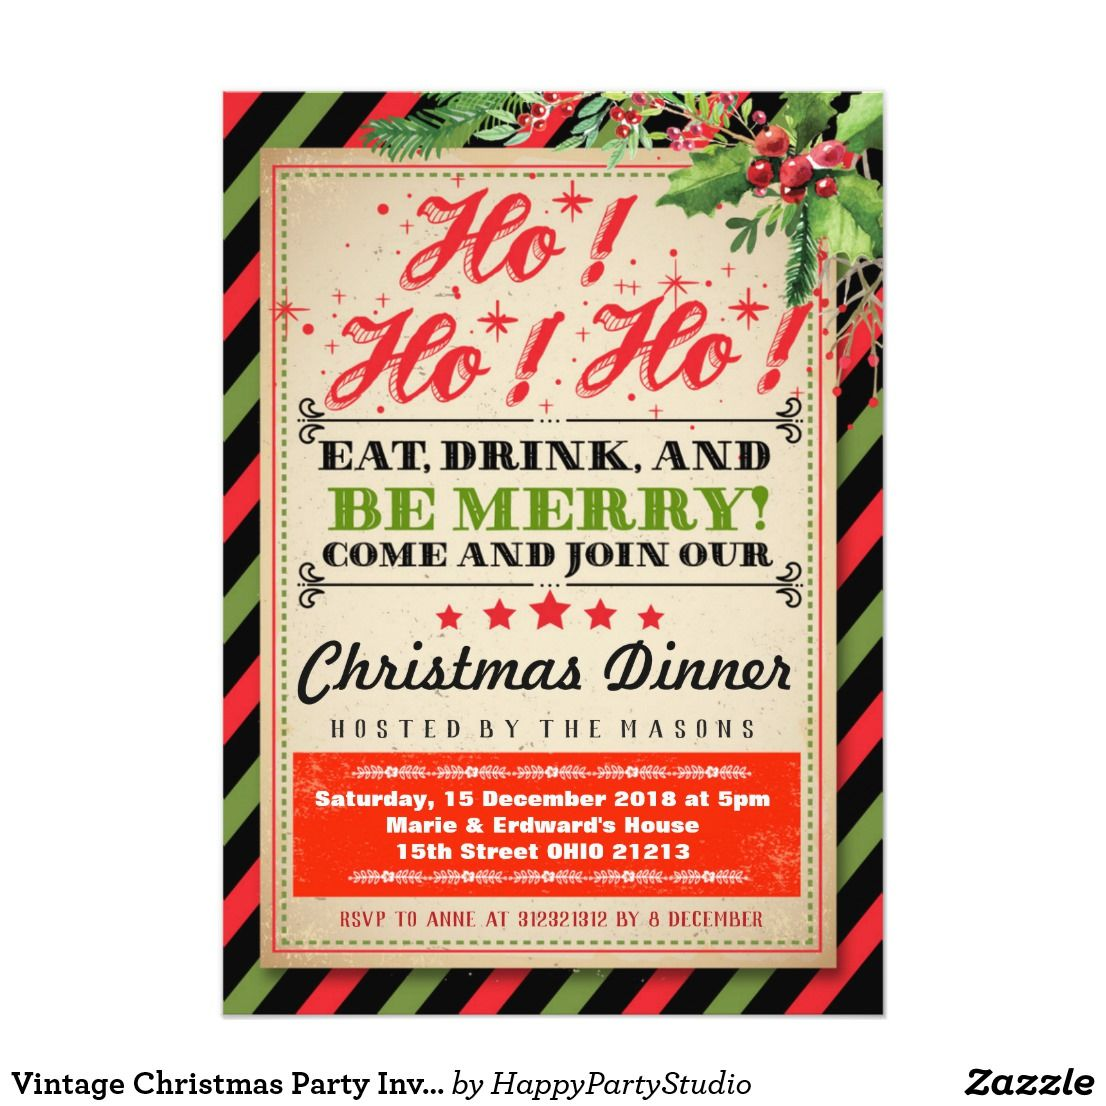 Vintage Christmas Party Invitations Images - invitation templates ...